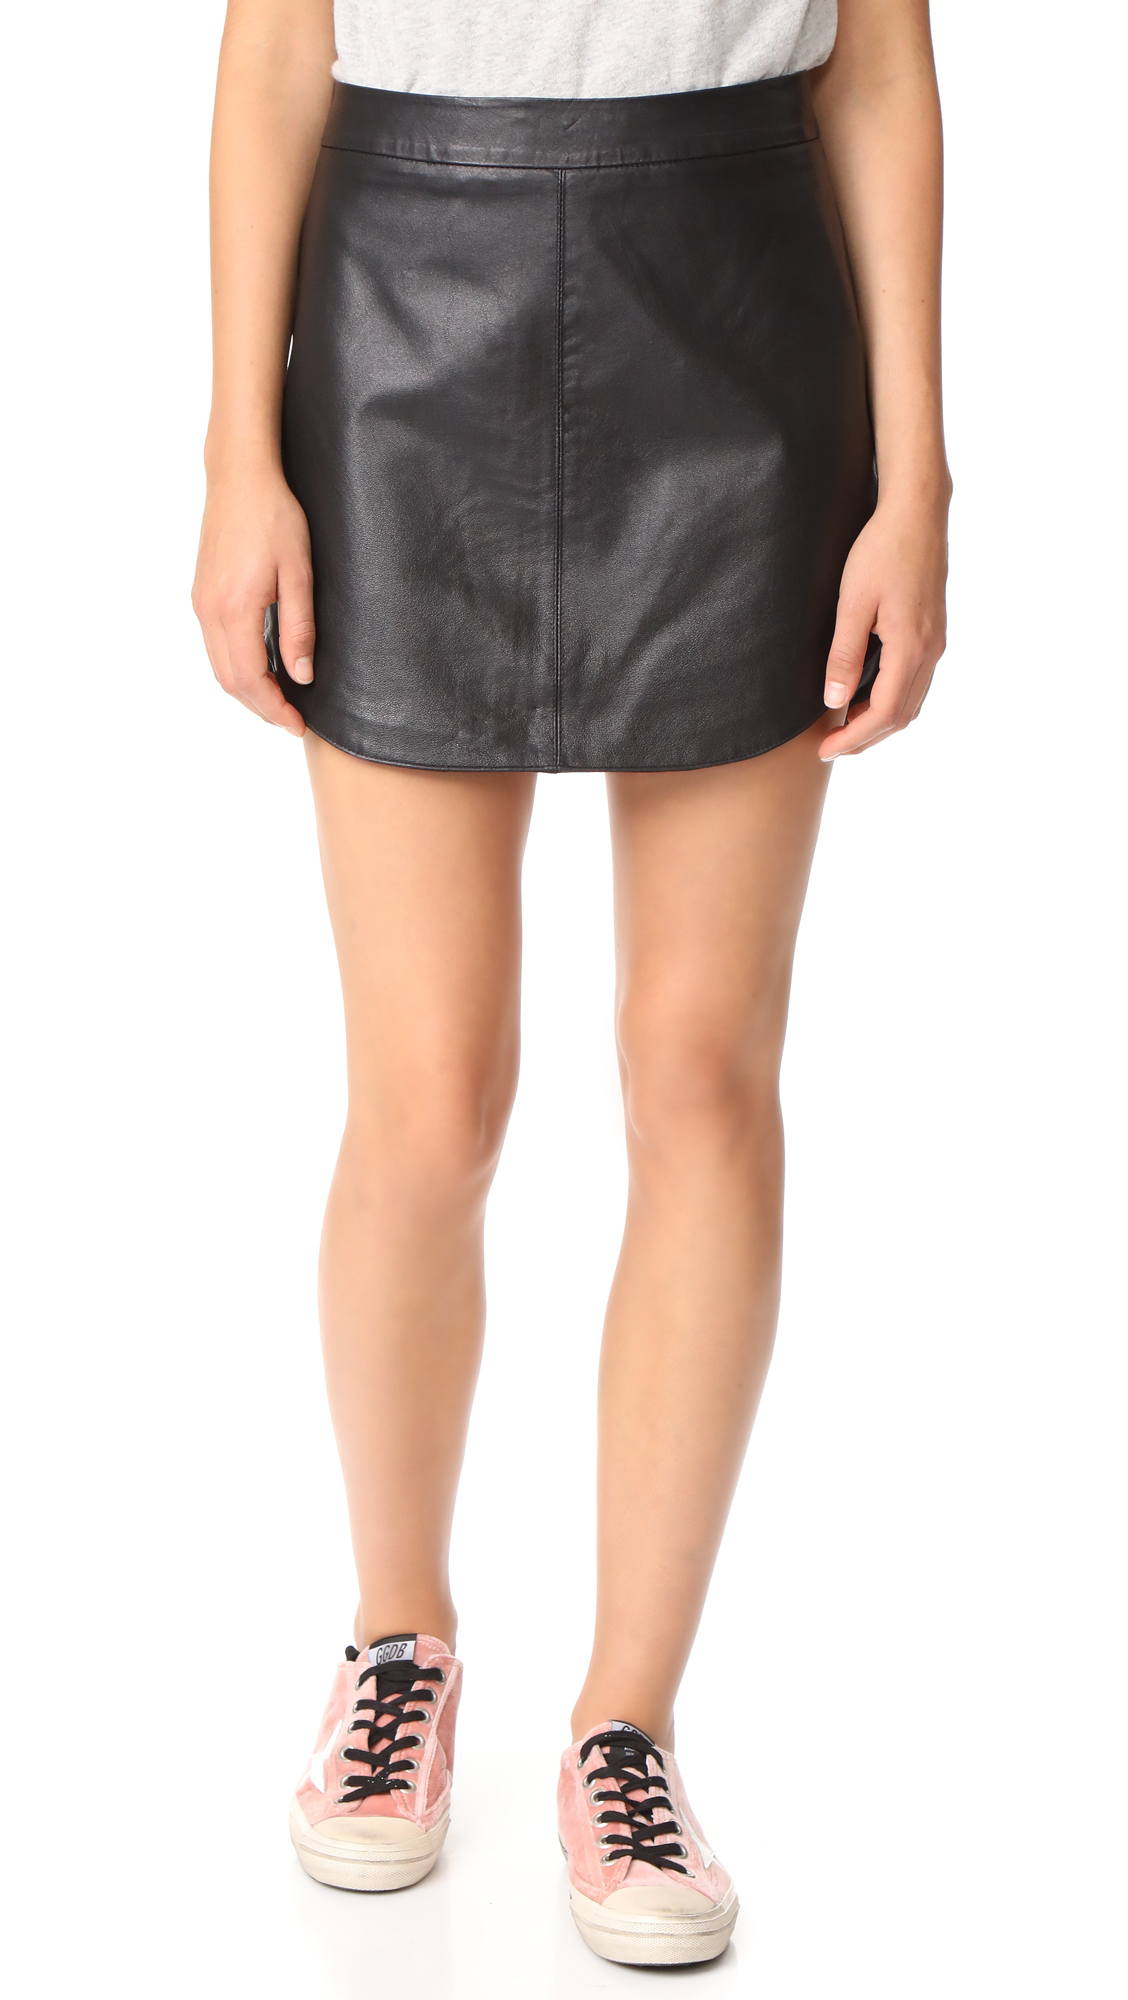 BB Dakota Conrad Leather Mini Skirt - Black